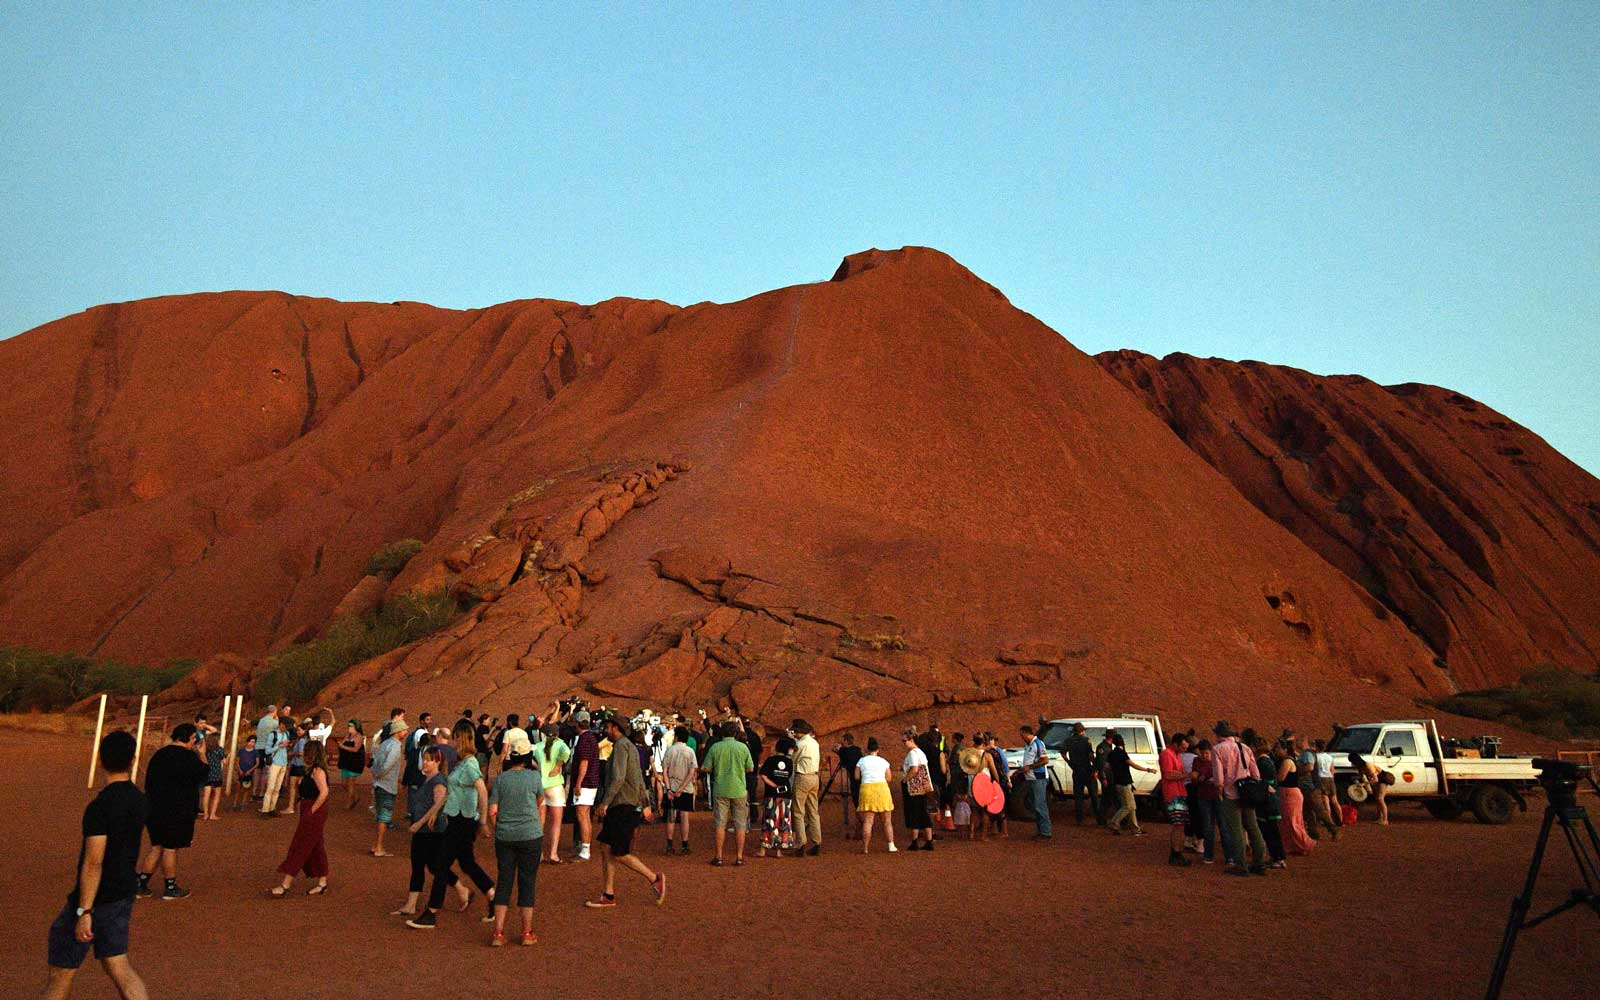 Australia's Uluru was permanently closed to climbers October 25